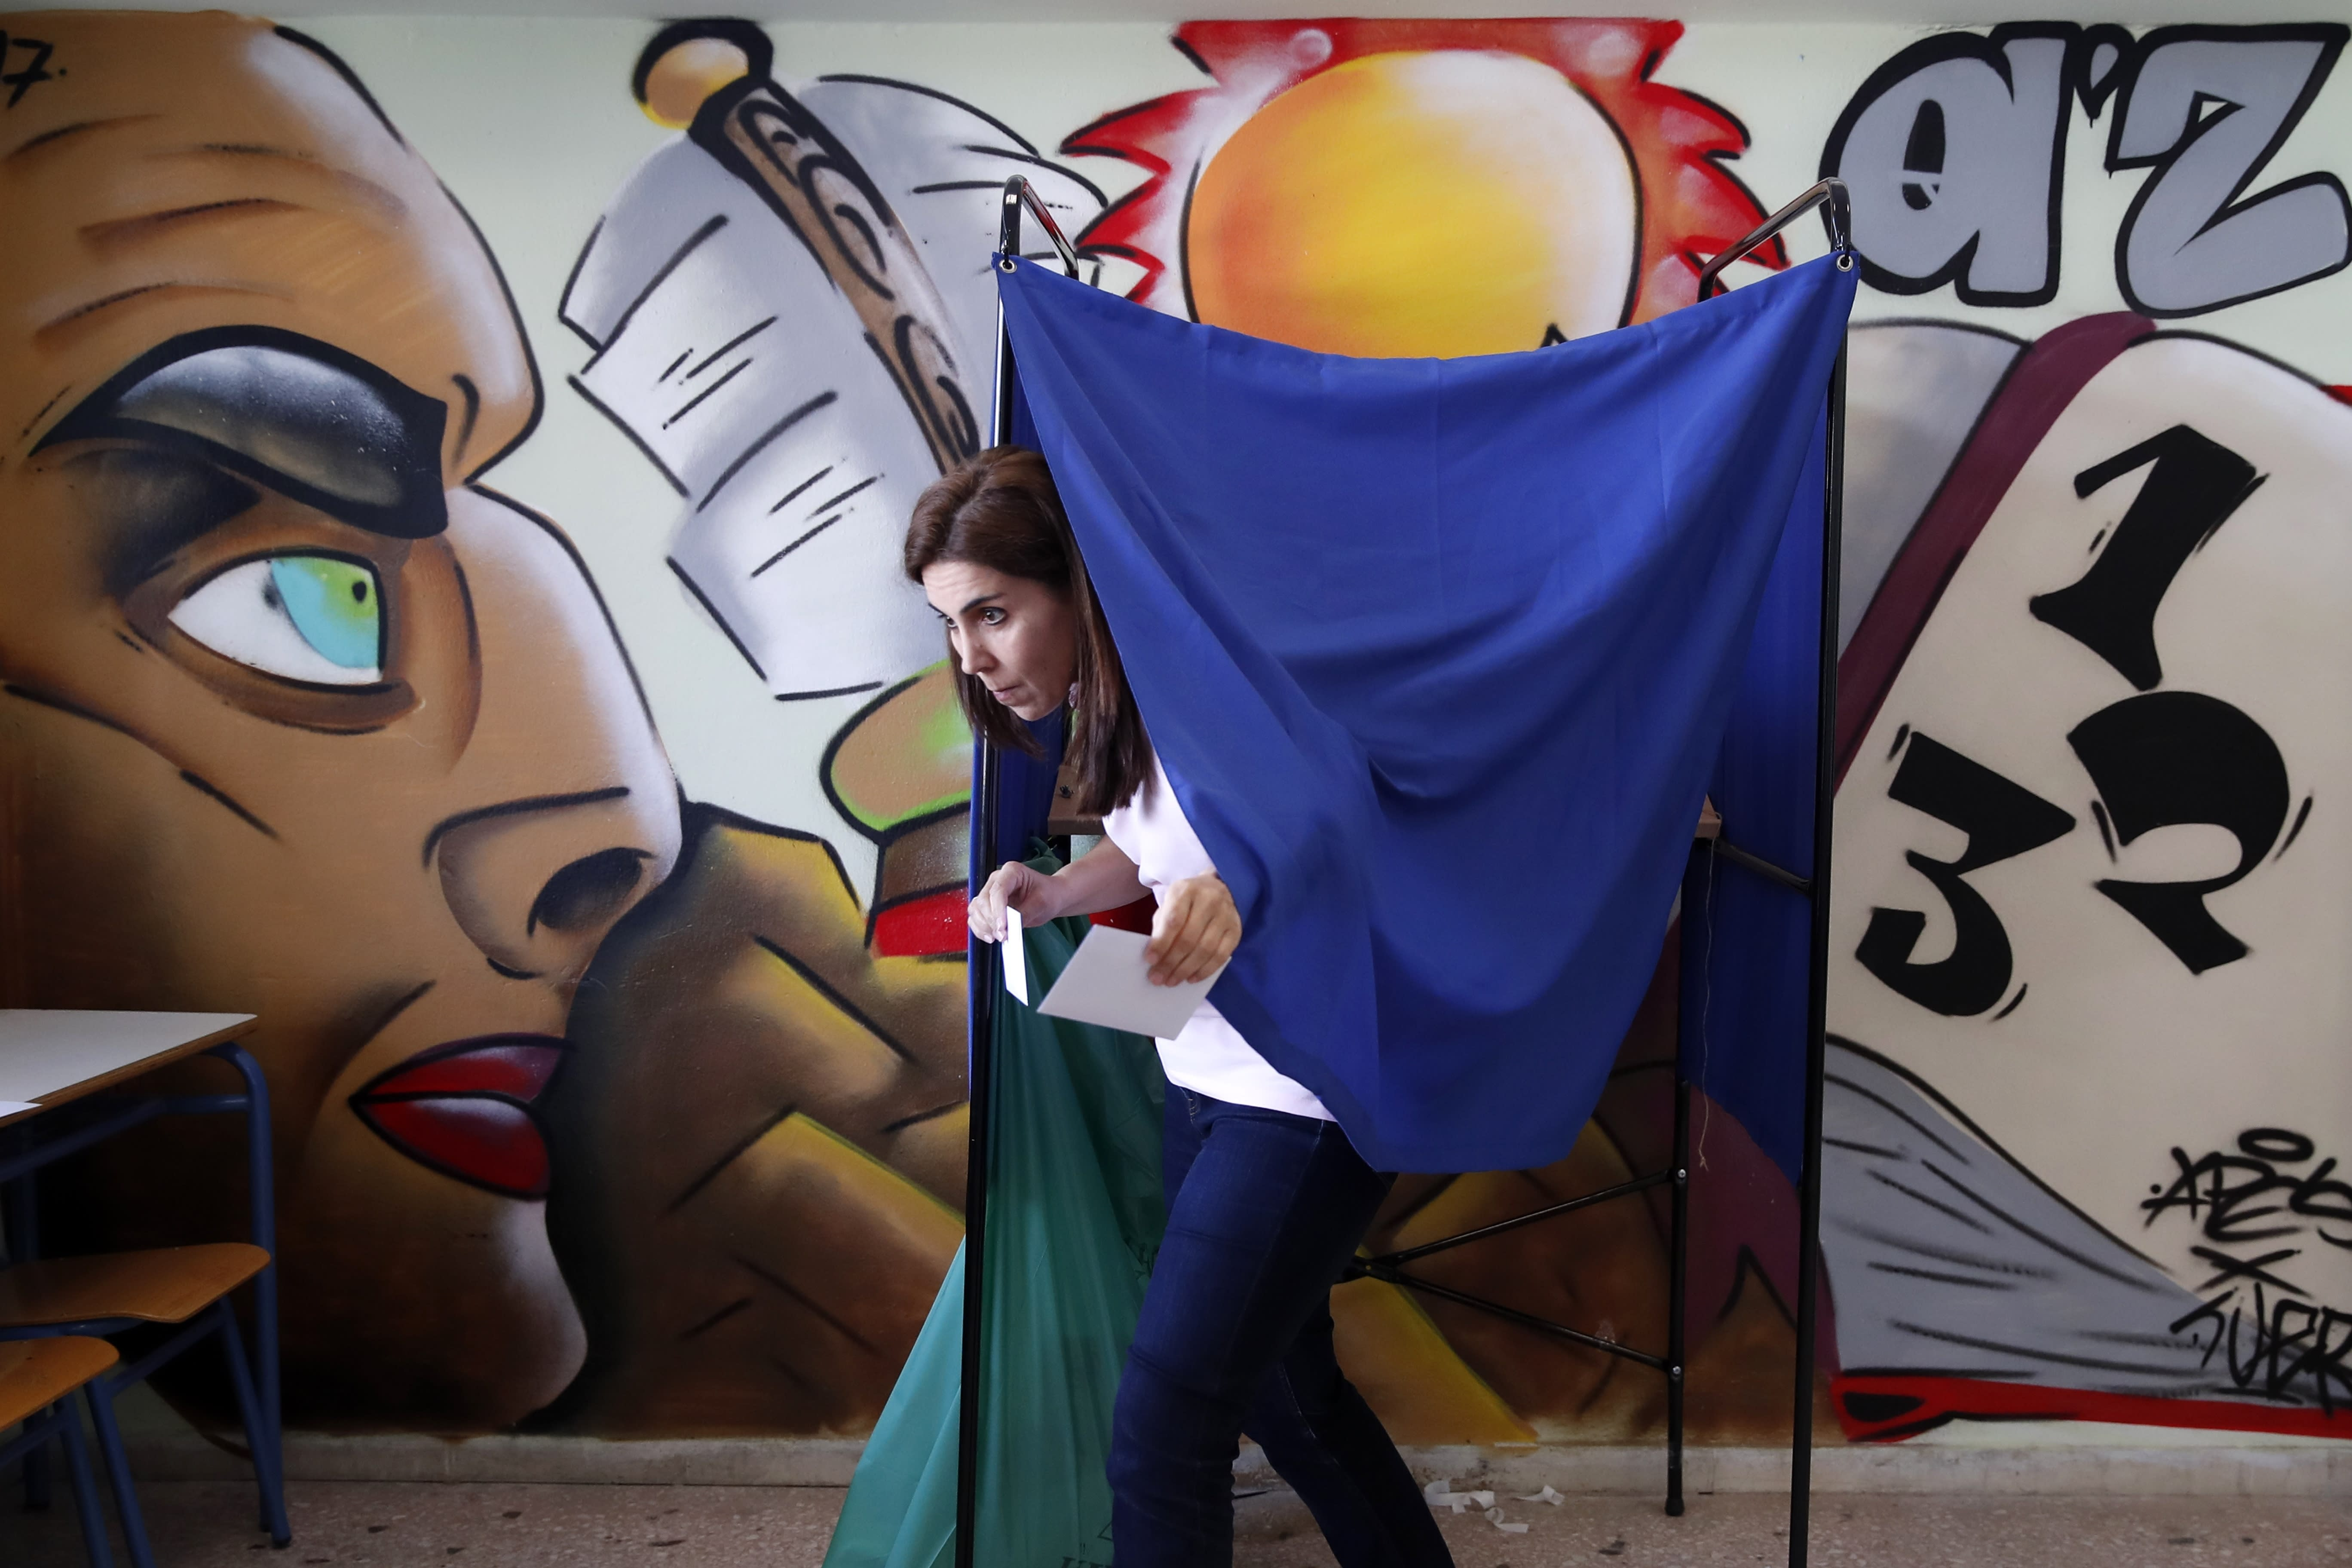 A woman casts his vote at a polling station in Athens on Sunday, May 26, 2019. Polls opened early Sunday in Greece, with nearly 10 million registered voters called upon to vote for the European Parliament, regional and local councils in 39,063 polling stations across the country. (AP Photo/Thanassis Stavrakis)